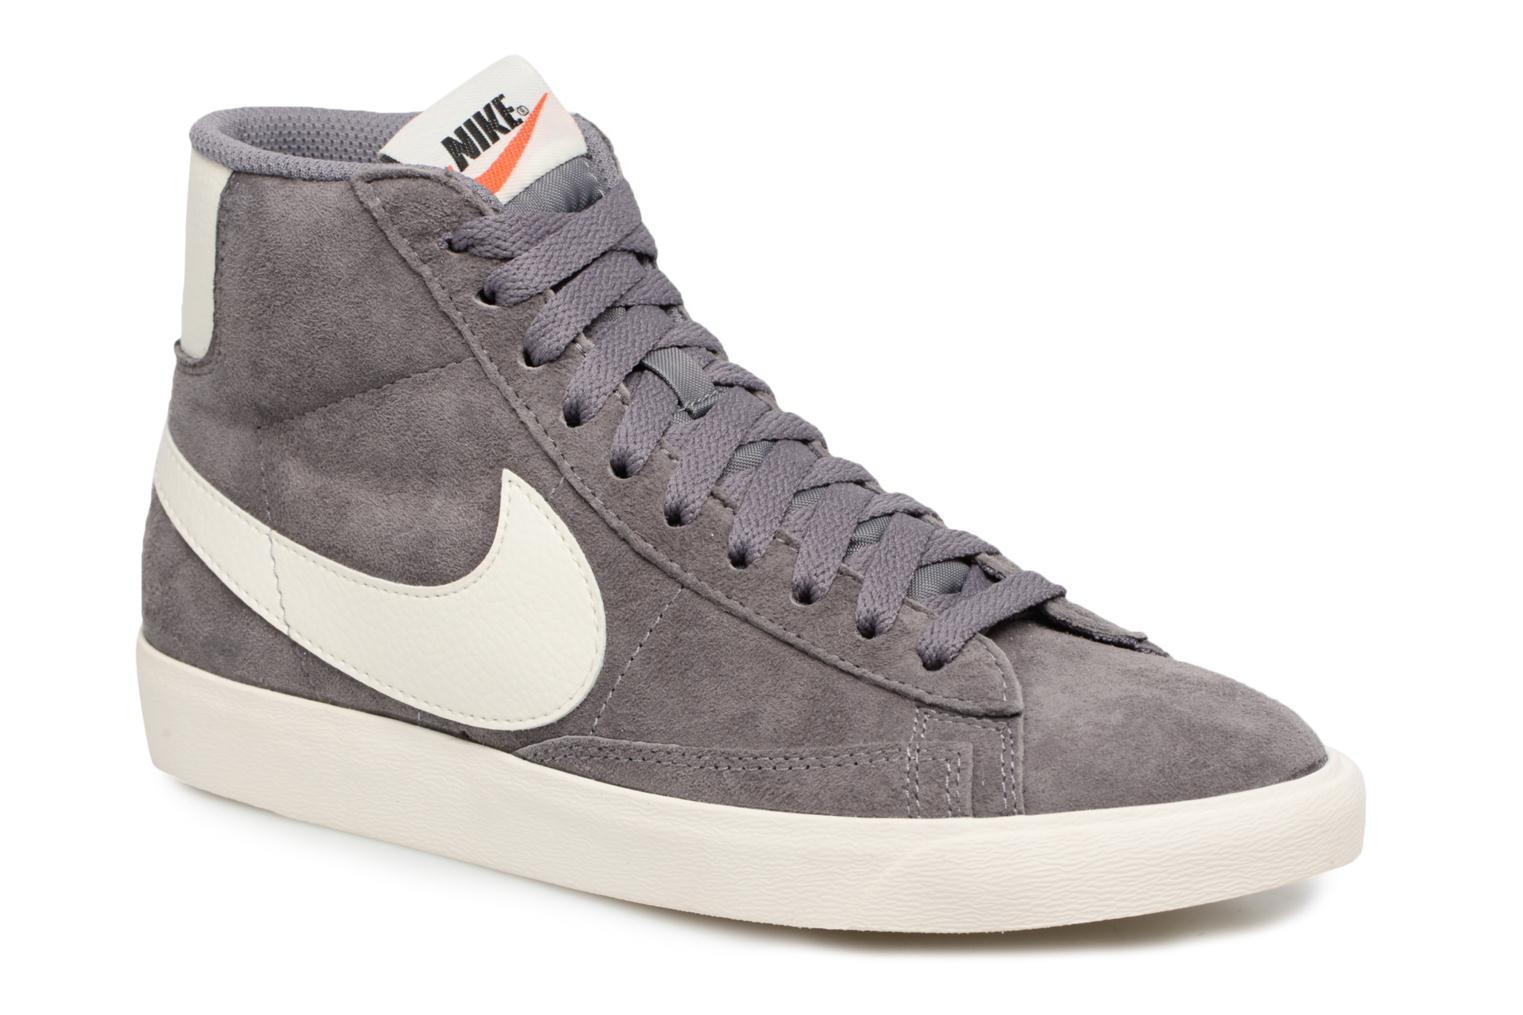 competitive price 7dbc4 a45a6 ... reduced sneaker nike wmns blazer mid vntg suede grau detaillierte  ansicht modell 1d2e5 aa2b3